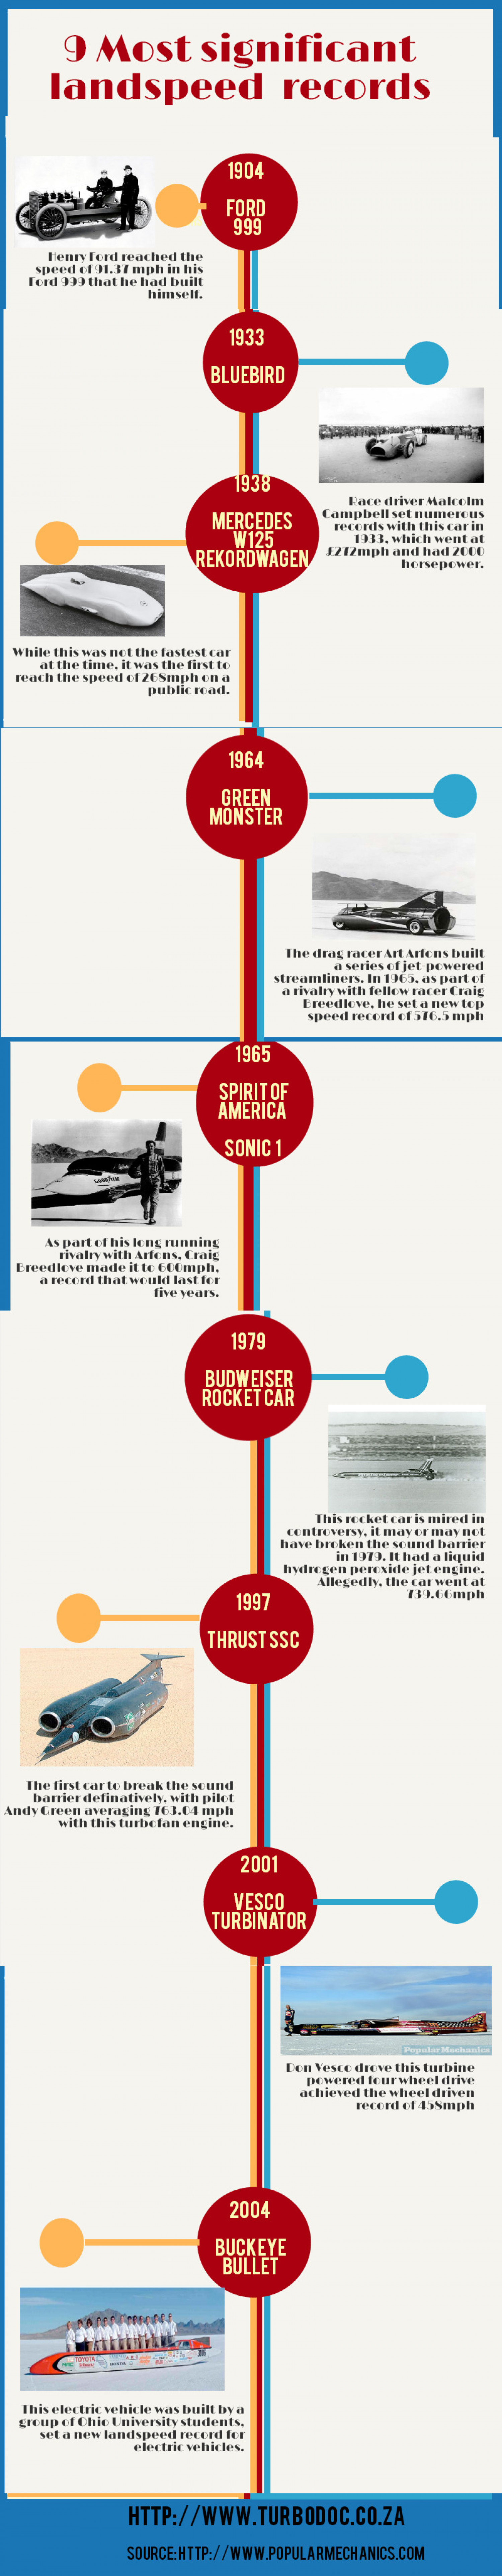 9 significant landspeed records  Infographic